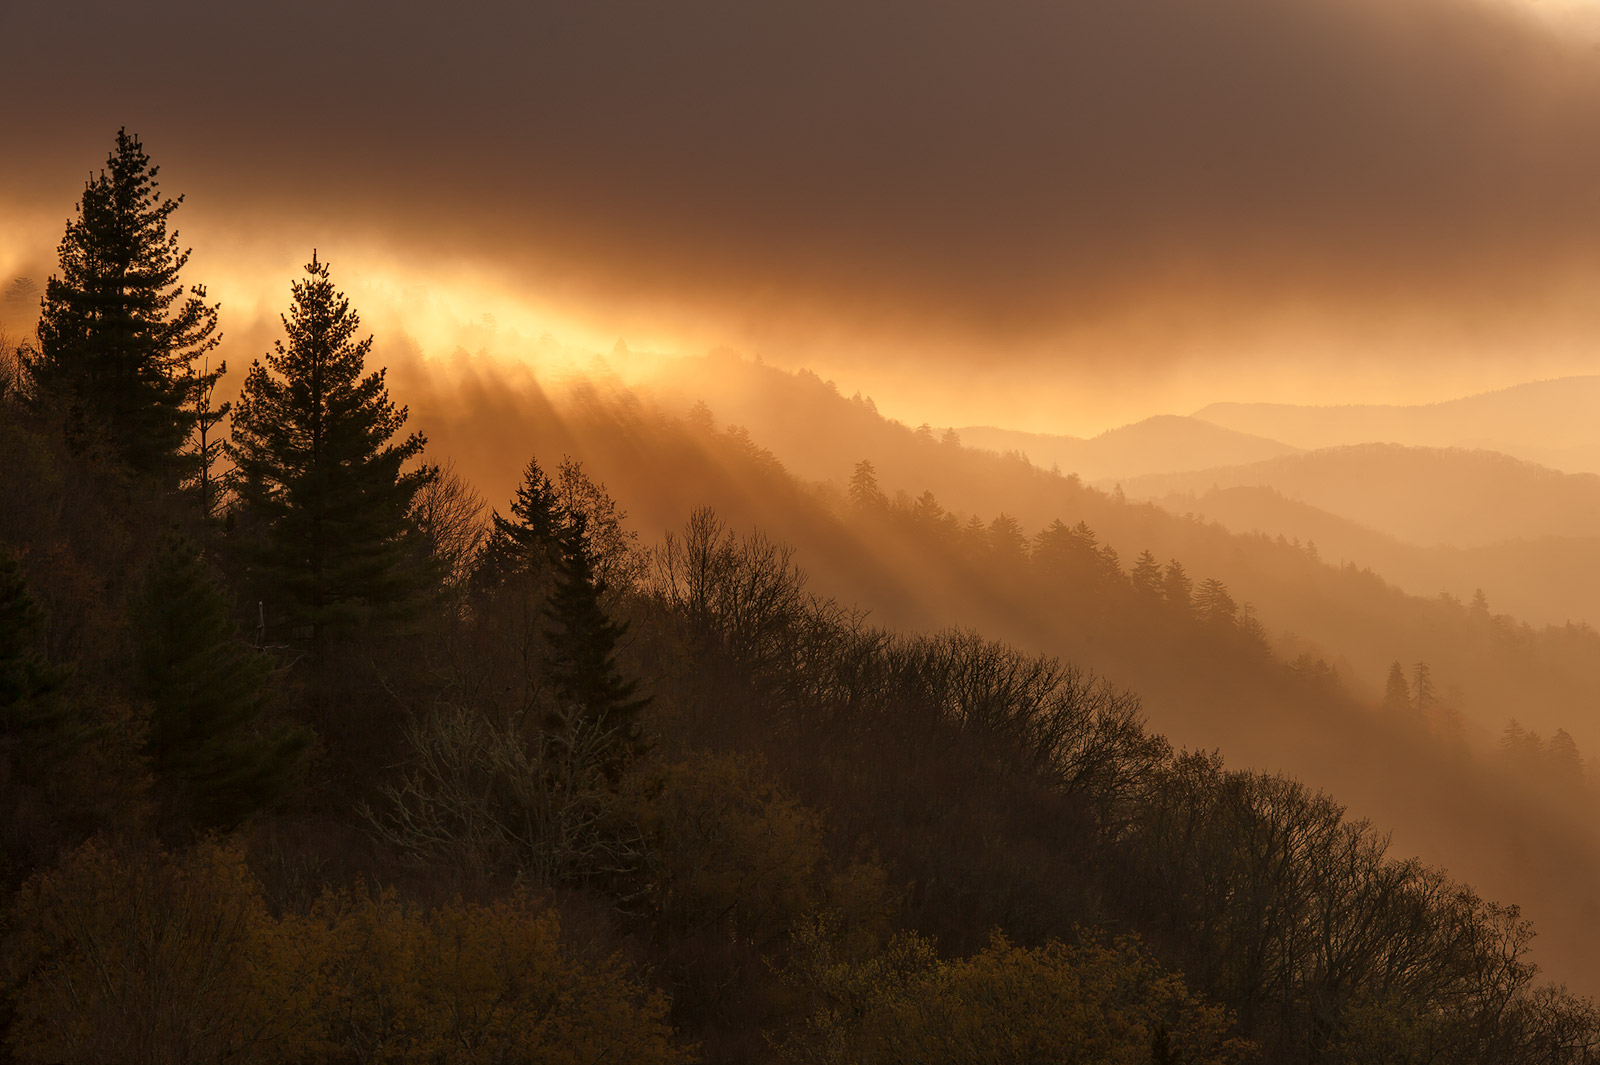 Breaking light and misty layers from the Oconaluftee Overlook on the North Carolina side of Newfound Gap.